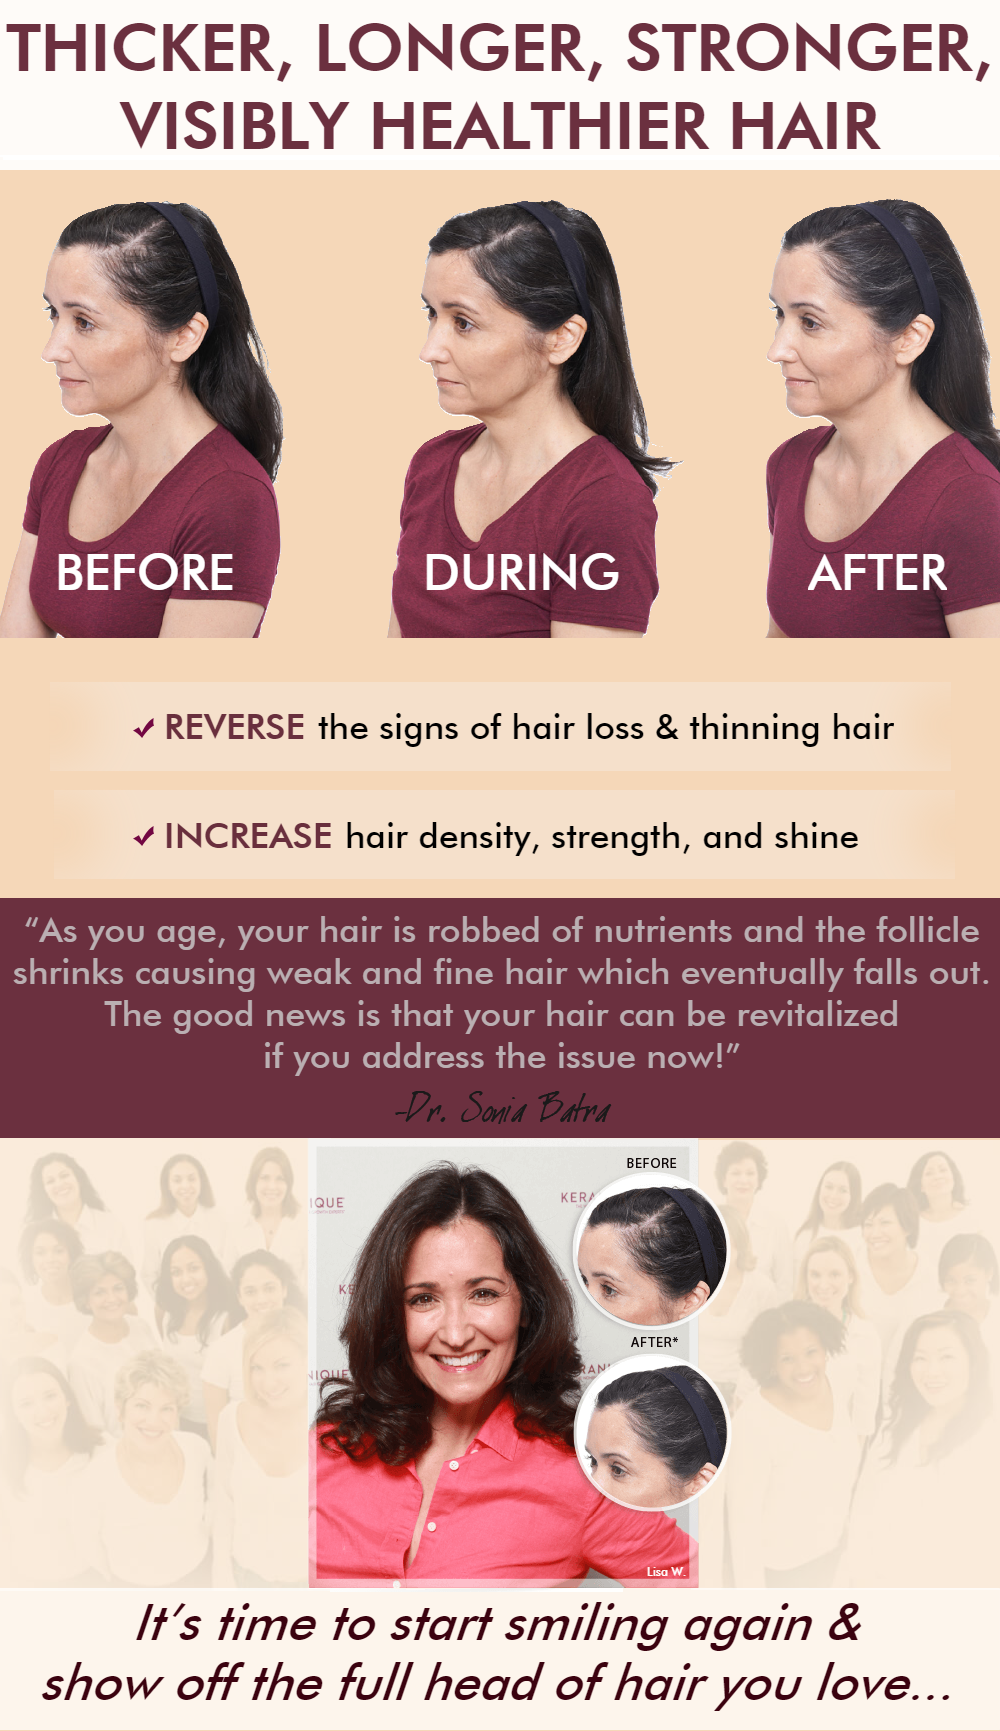 Thicker, longer, stronger, visibly healthier hair! Reverse